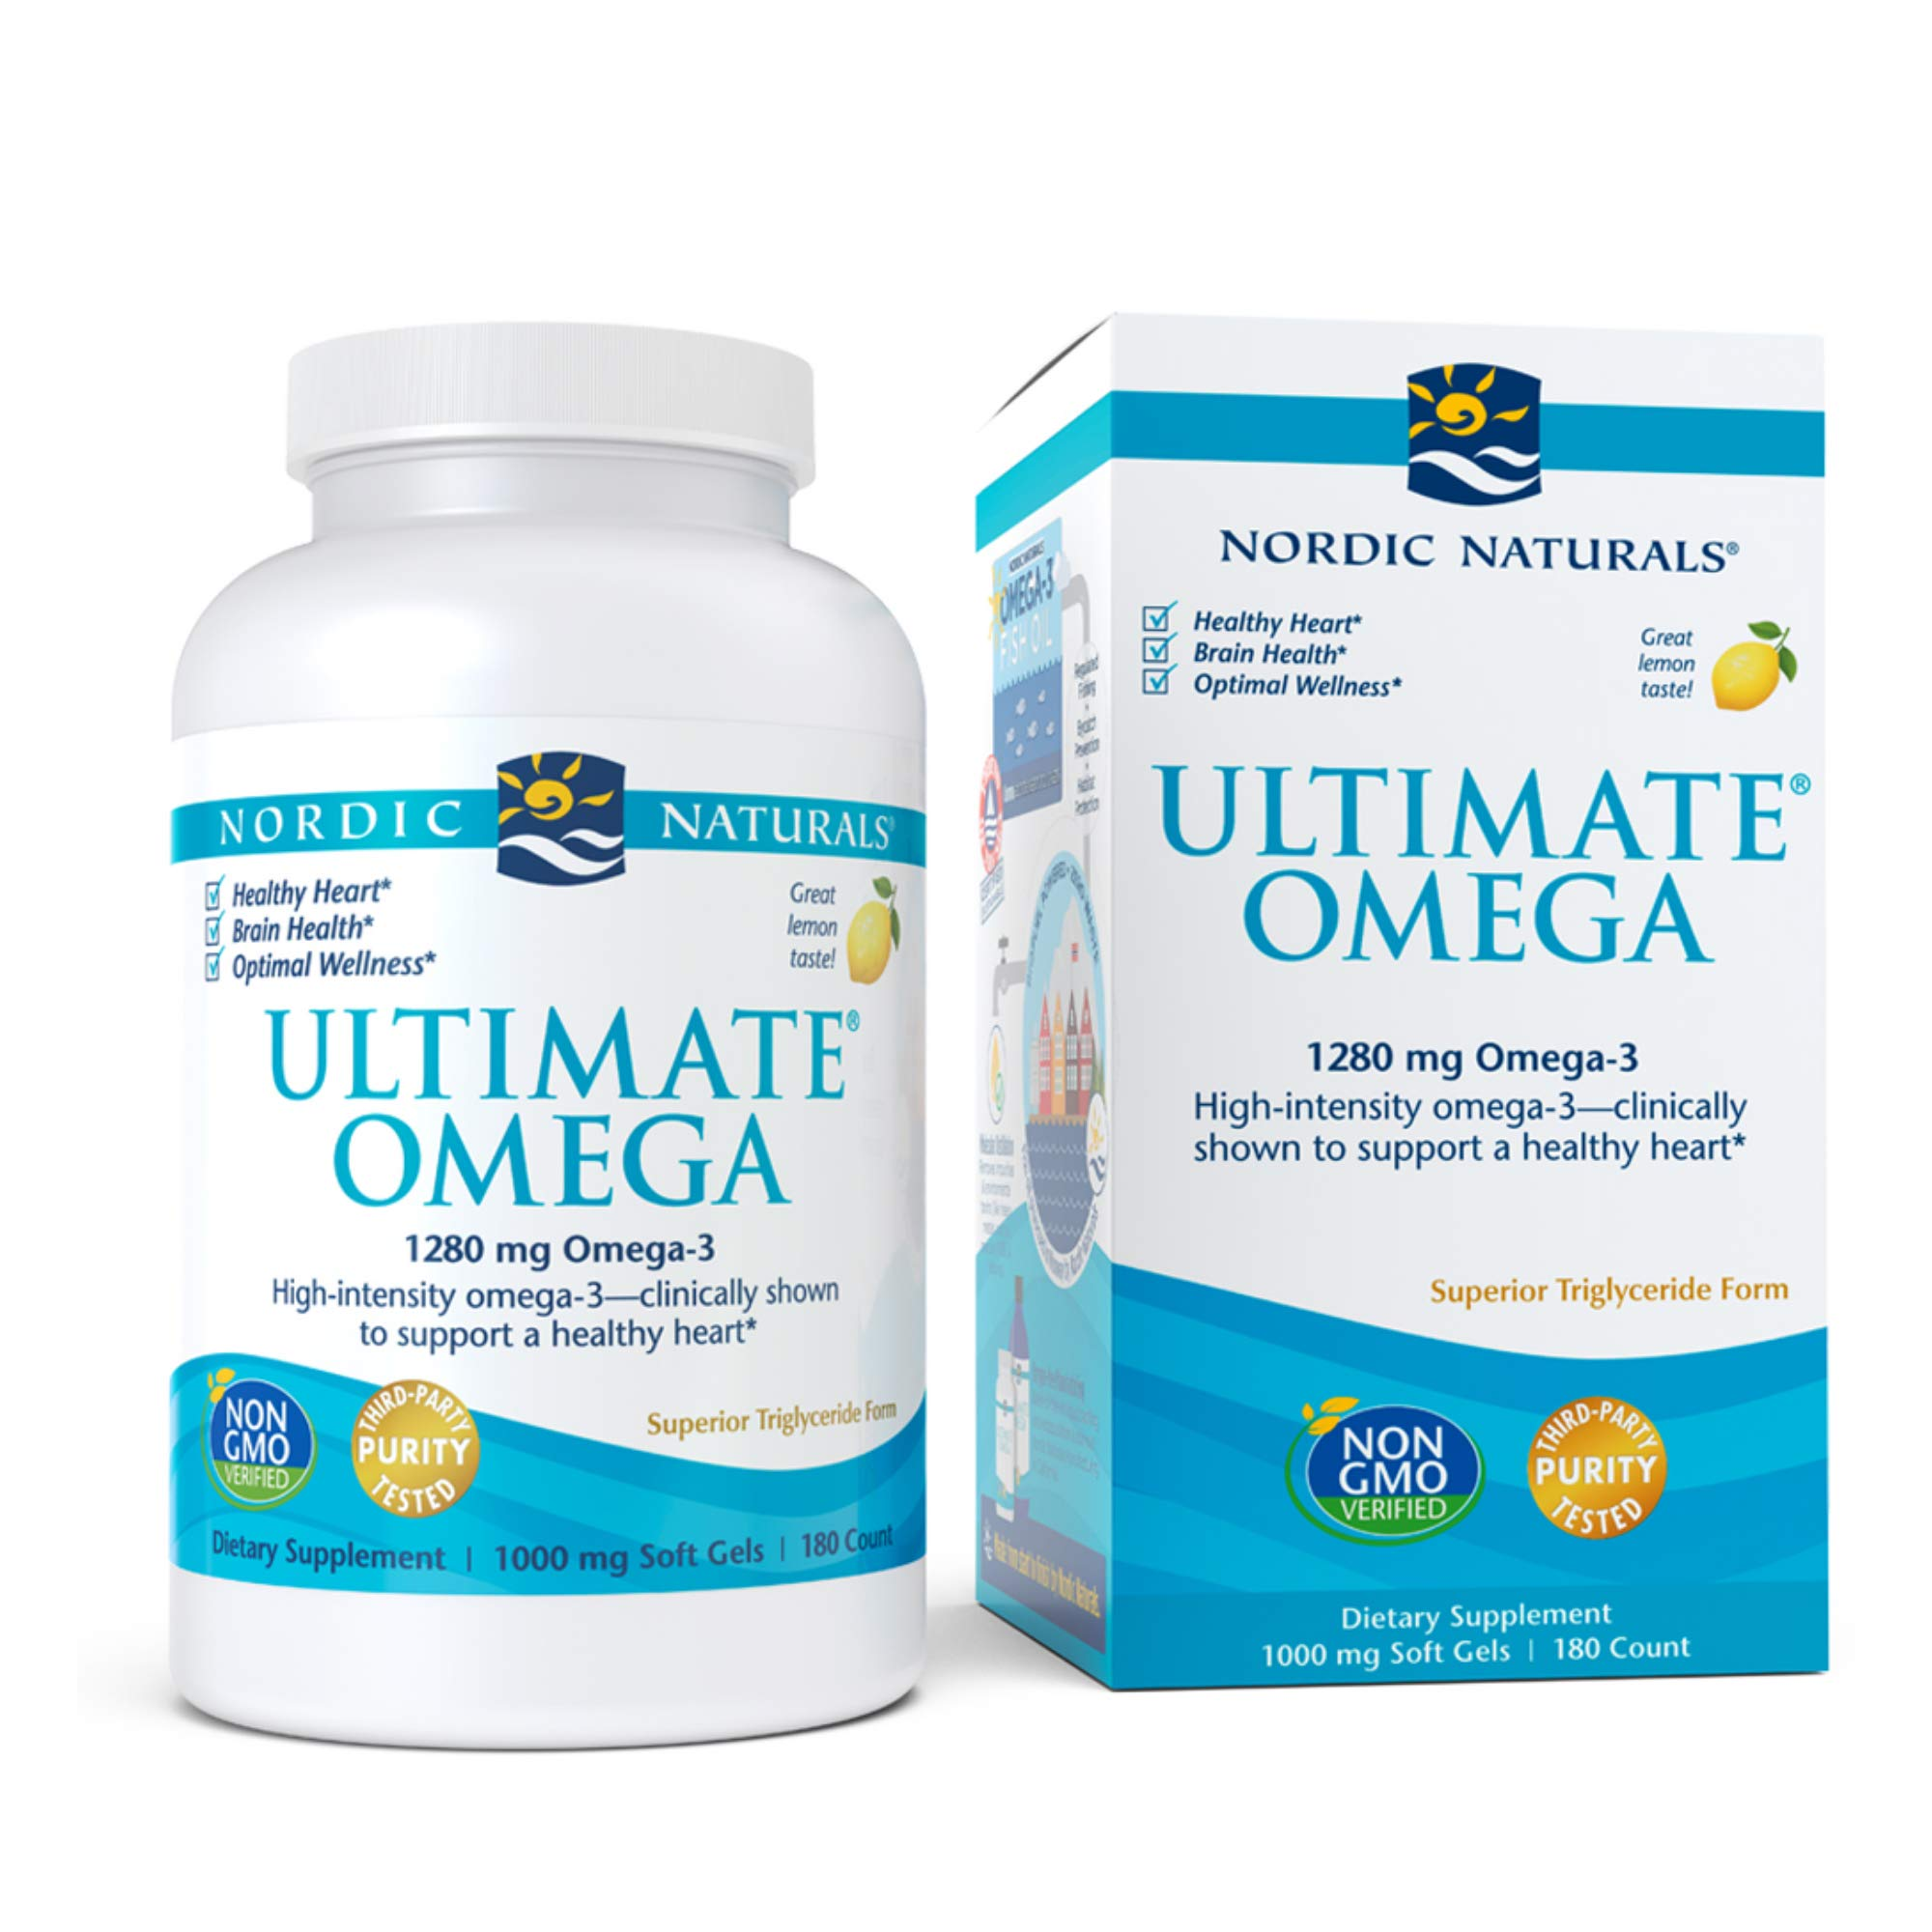 Nordic Naturals Ultimate Omega, Lemon Flavor - 1280 mg Omega-3-180 Soft Gels - High-Potency Omega-3 Fish Oil with EPA & DHA - Promotes Brain & Heart Health - Non-GMO - 90 Servings